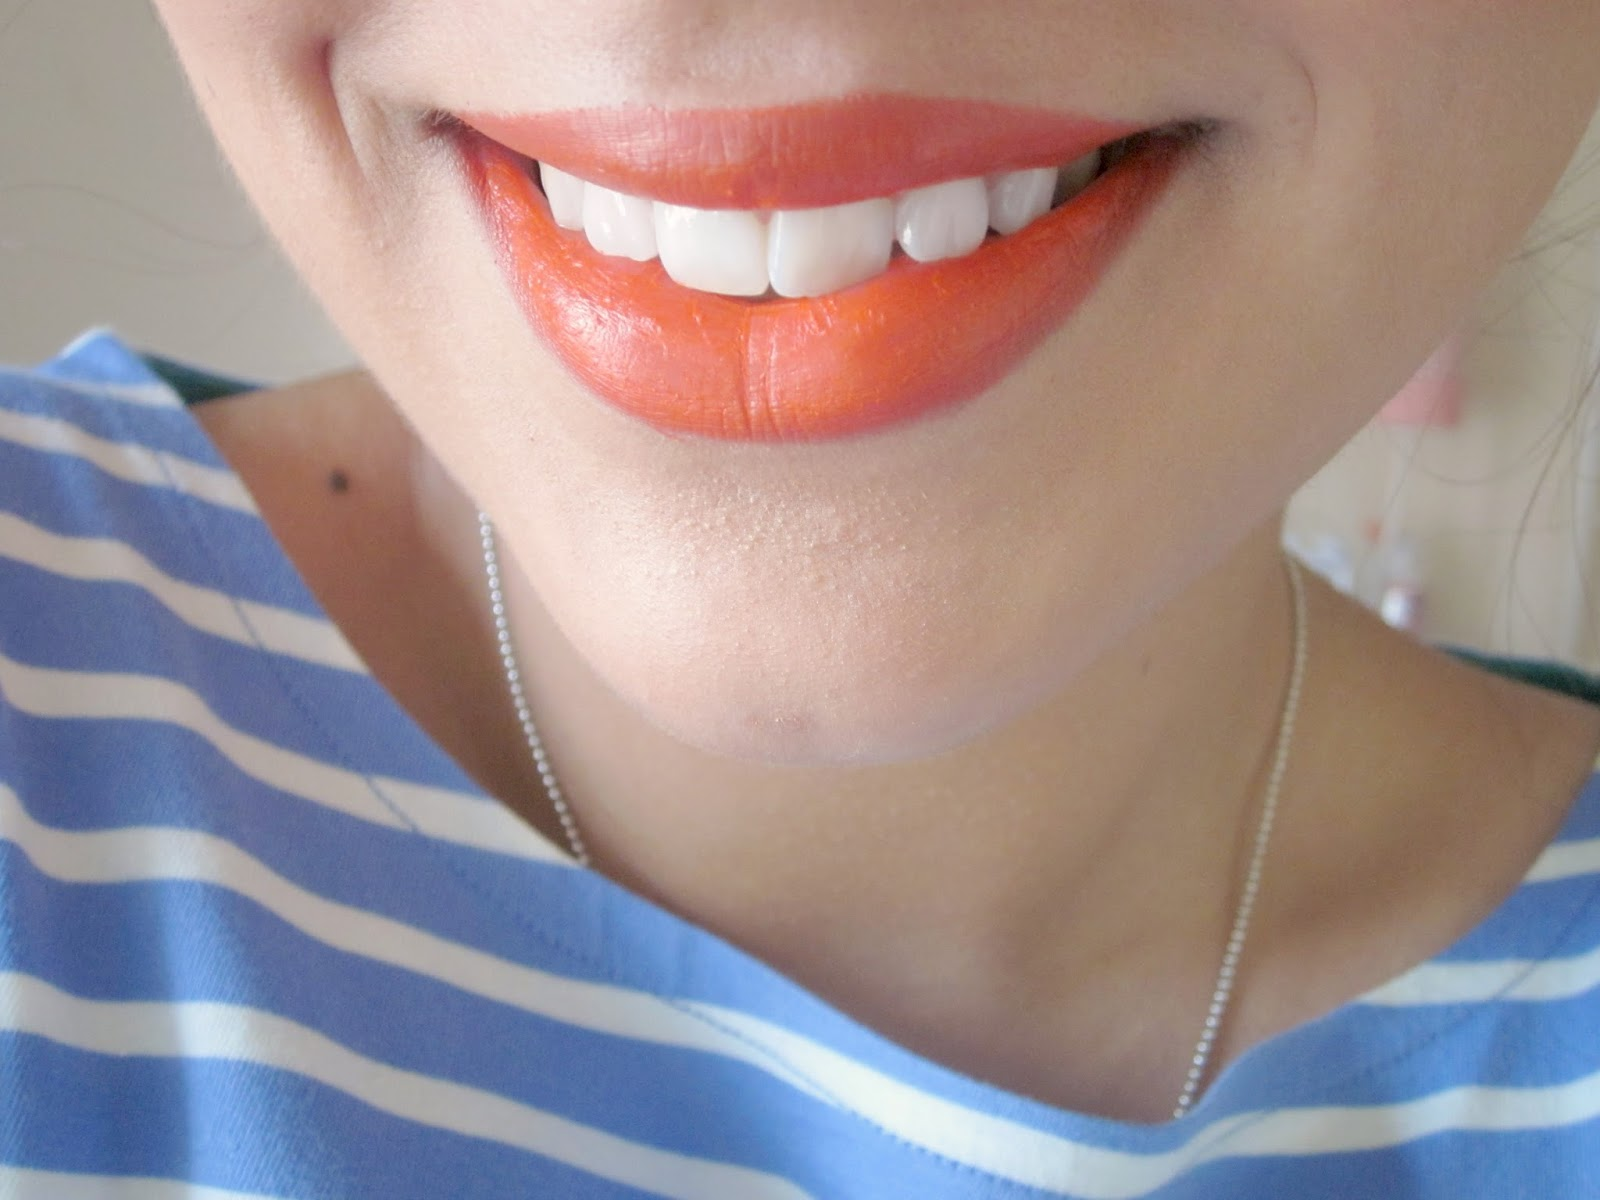 Bellapierre mandarina lipstick swatch on lips